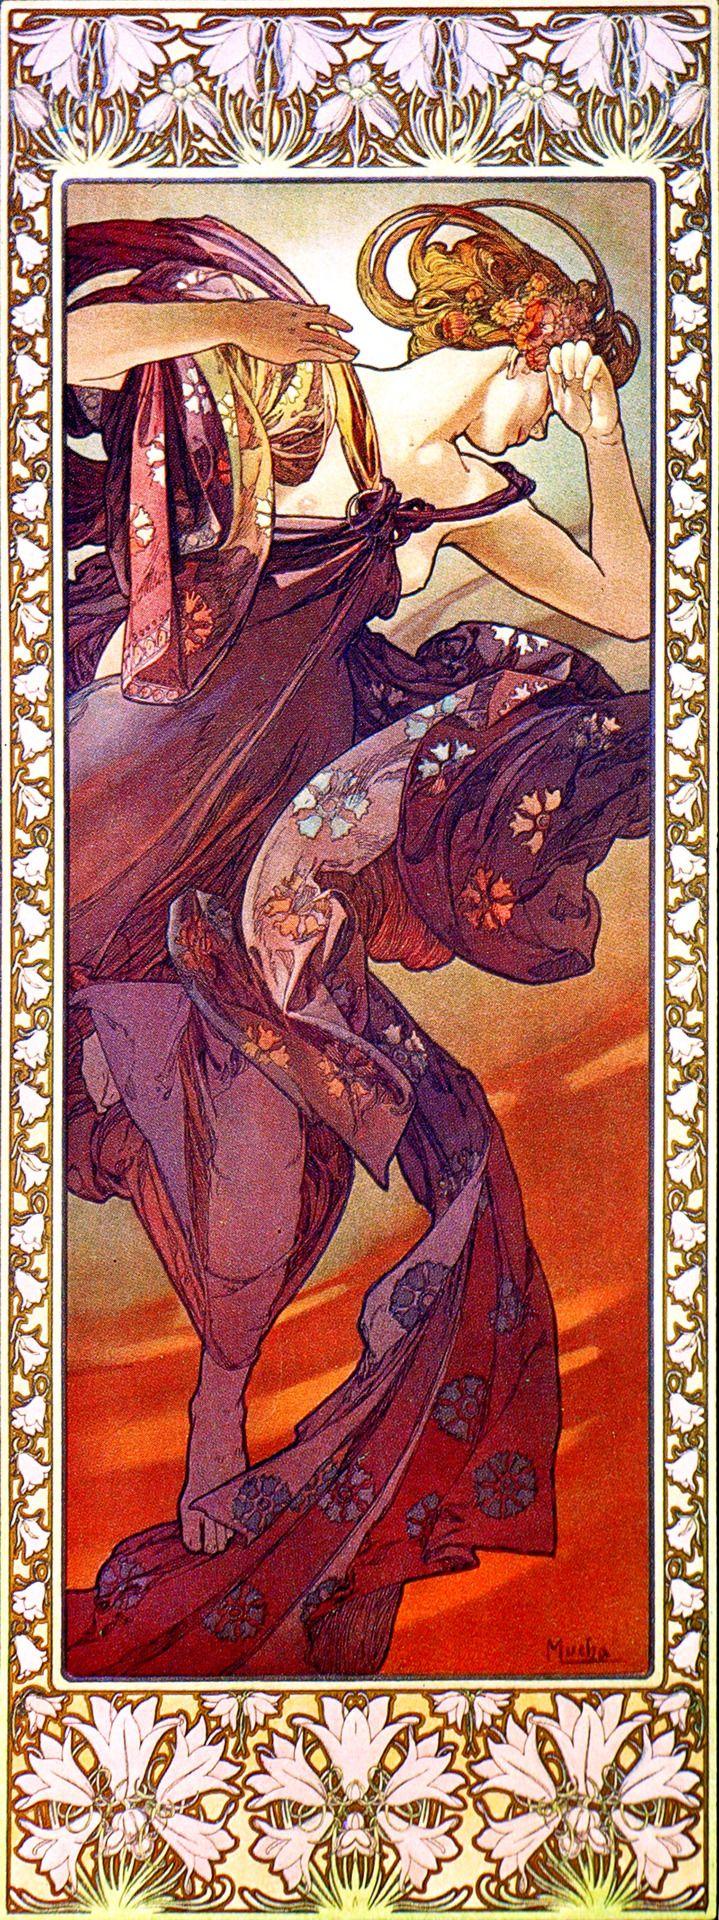 Alphonse Mucha and all of his glorious art nouveau pieces...in dire need of studying him more.